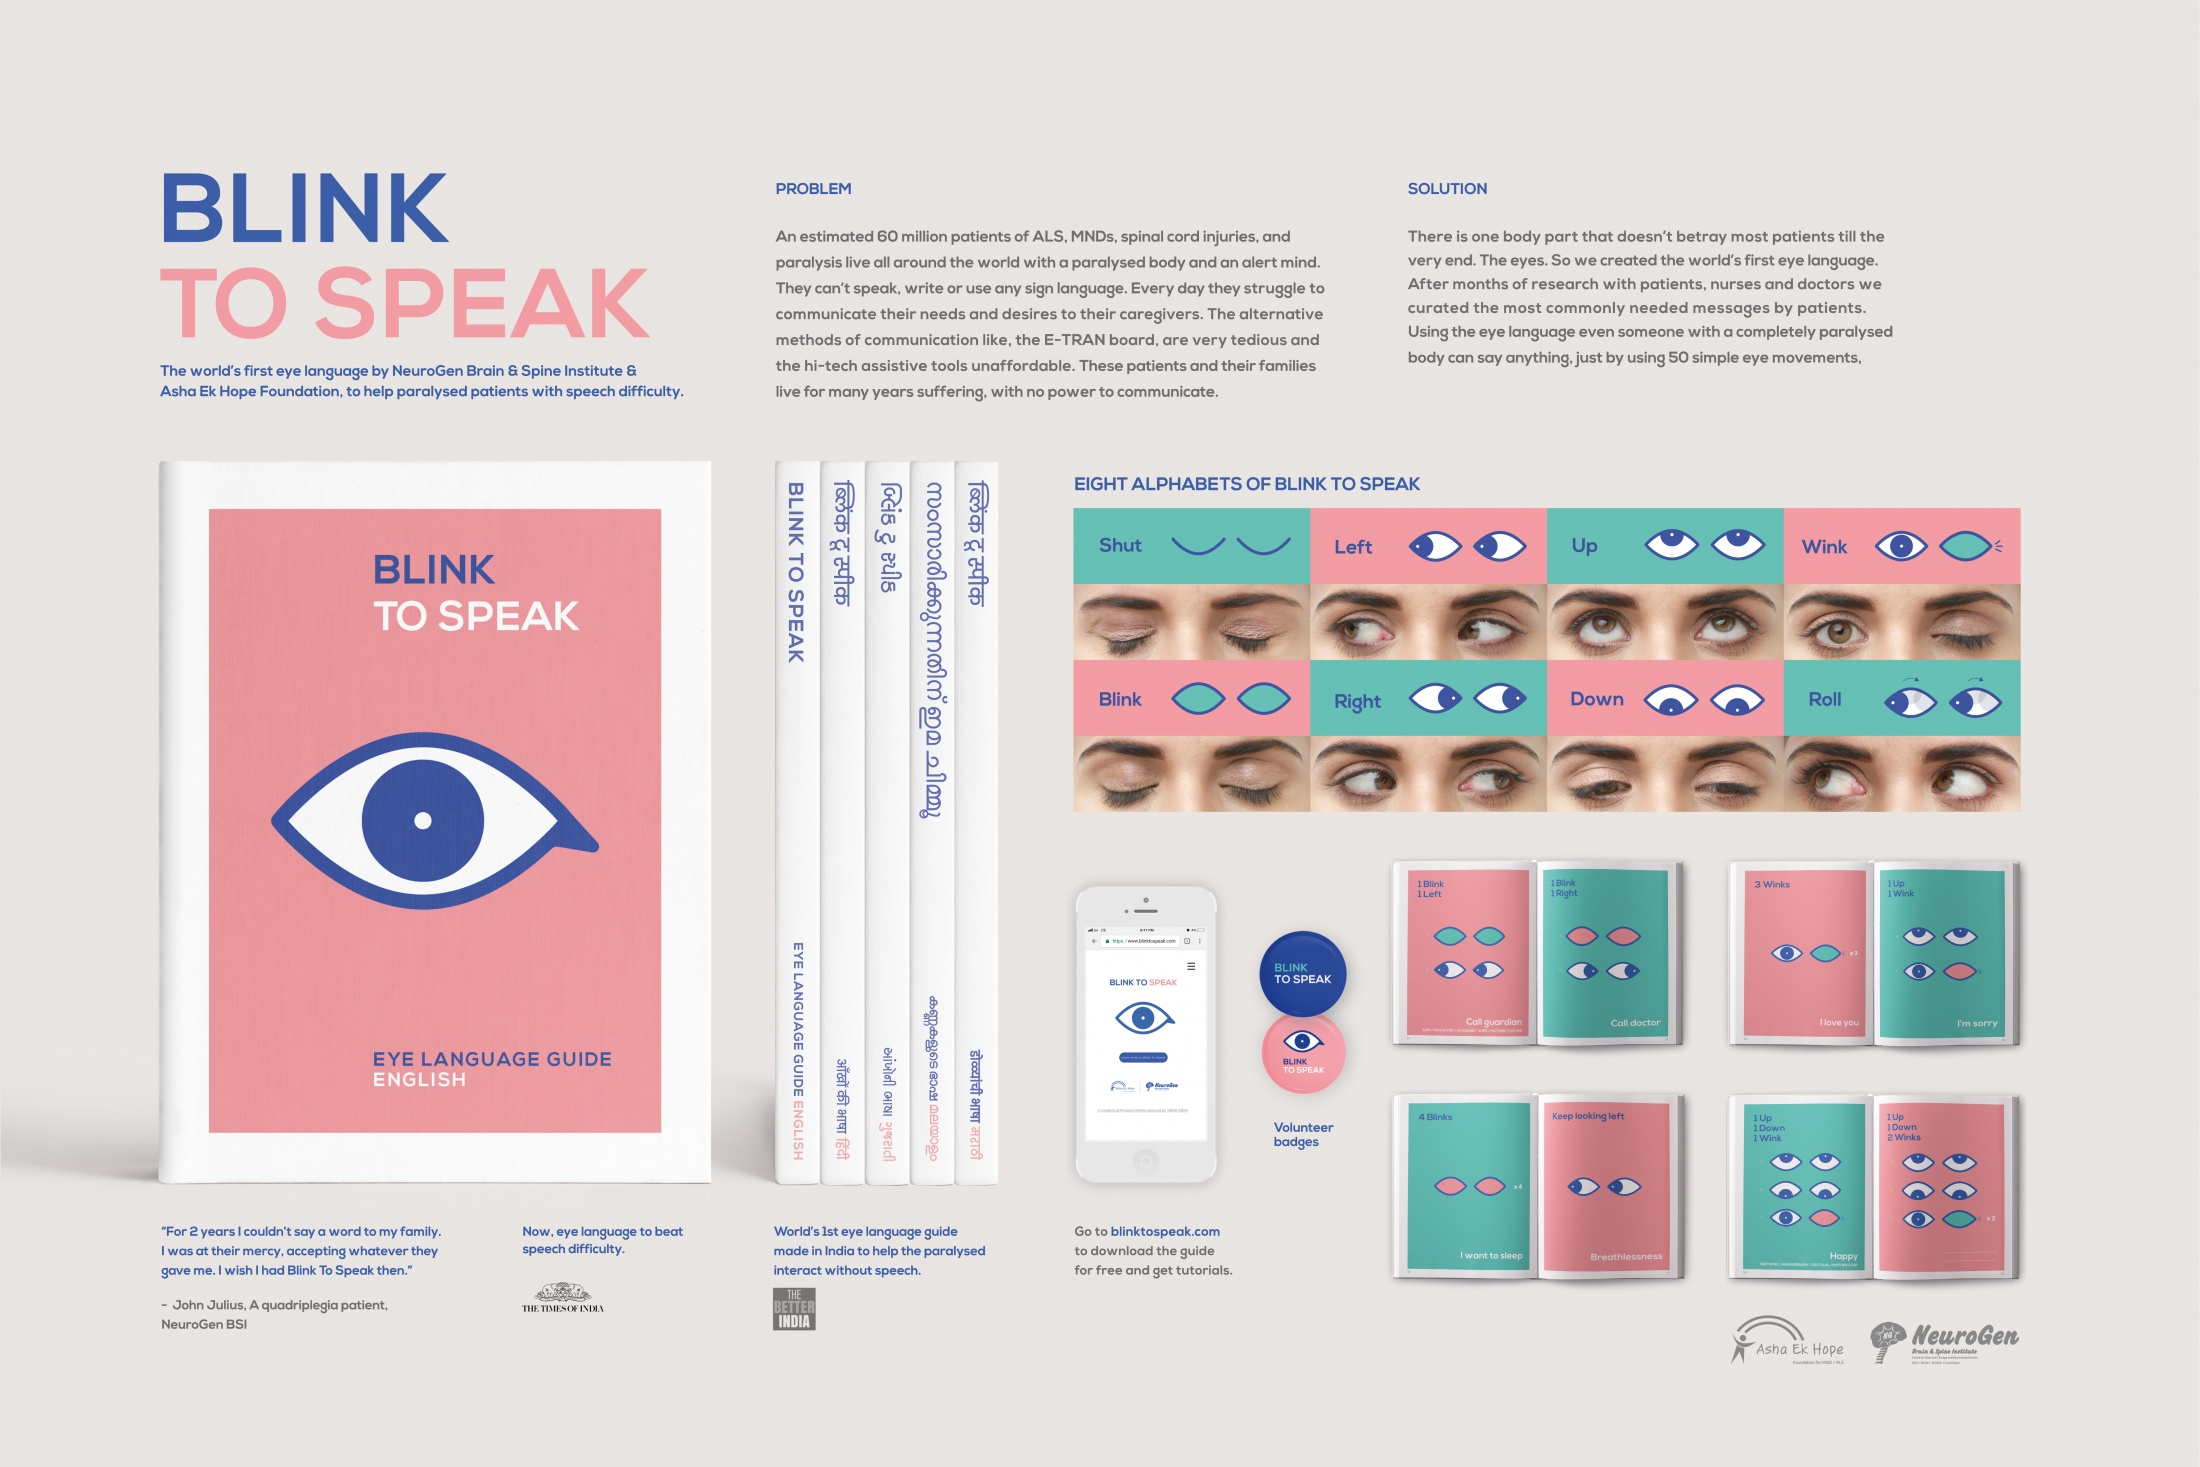 Image Media for Blink To Speak